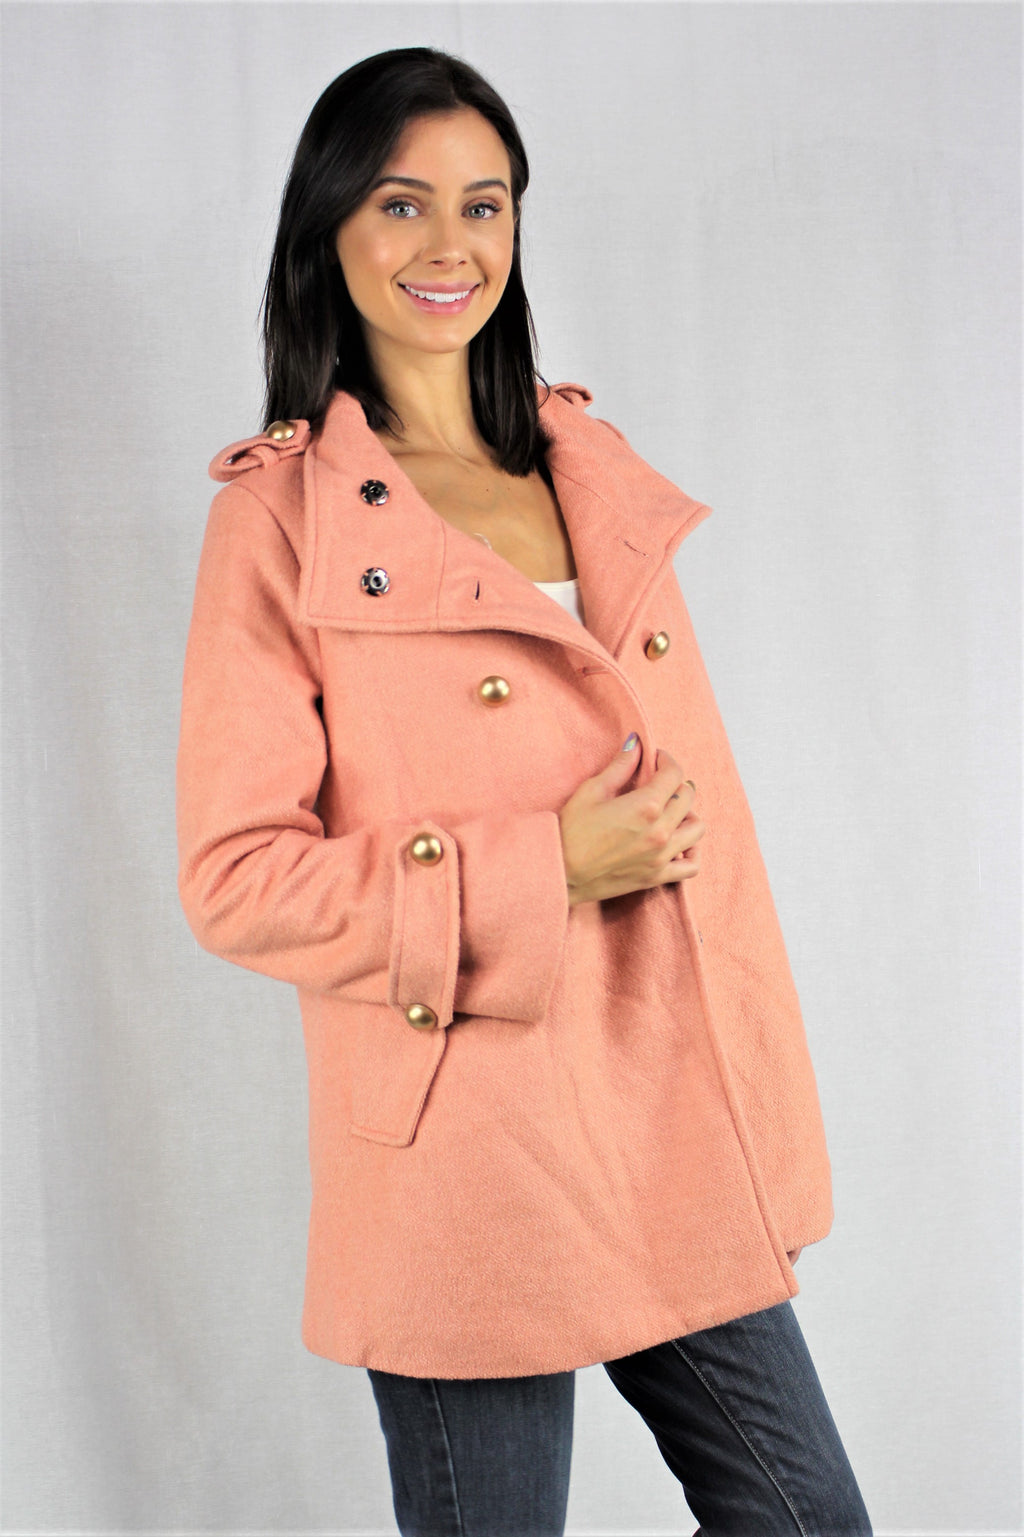 Women's Stylish Button Up Tweed Coat with Pockets *